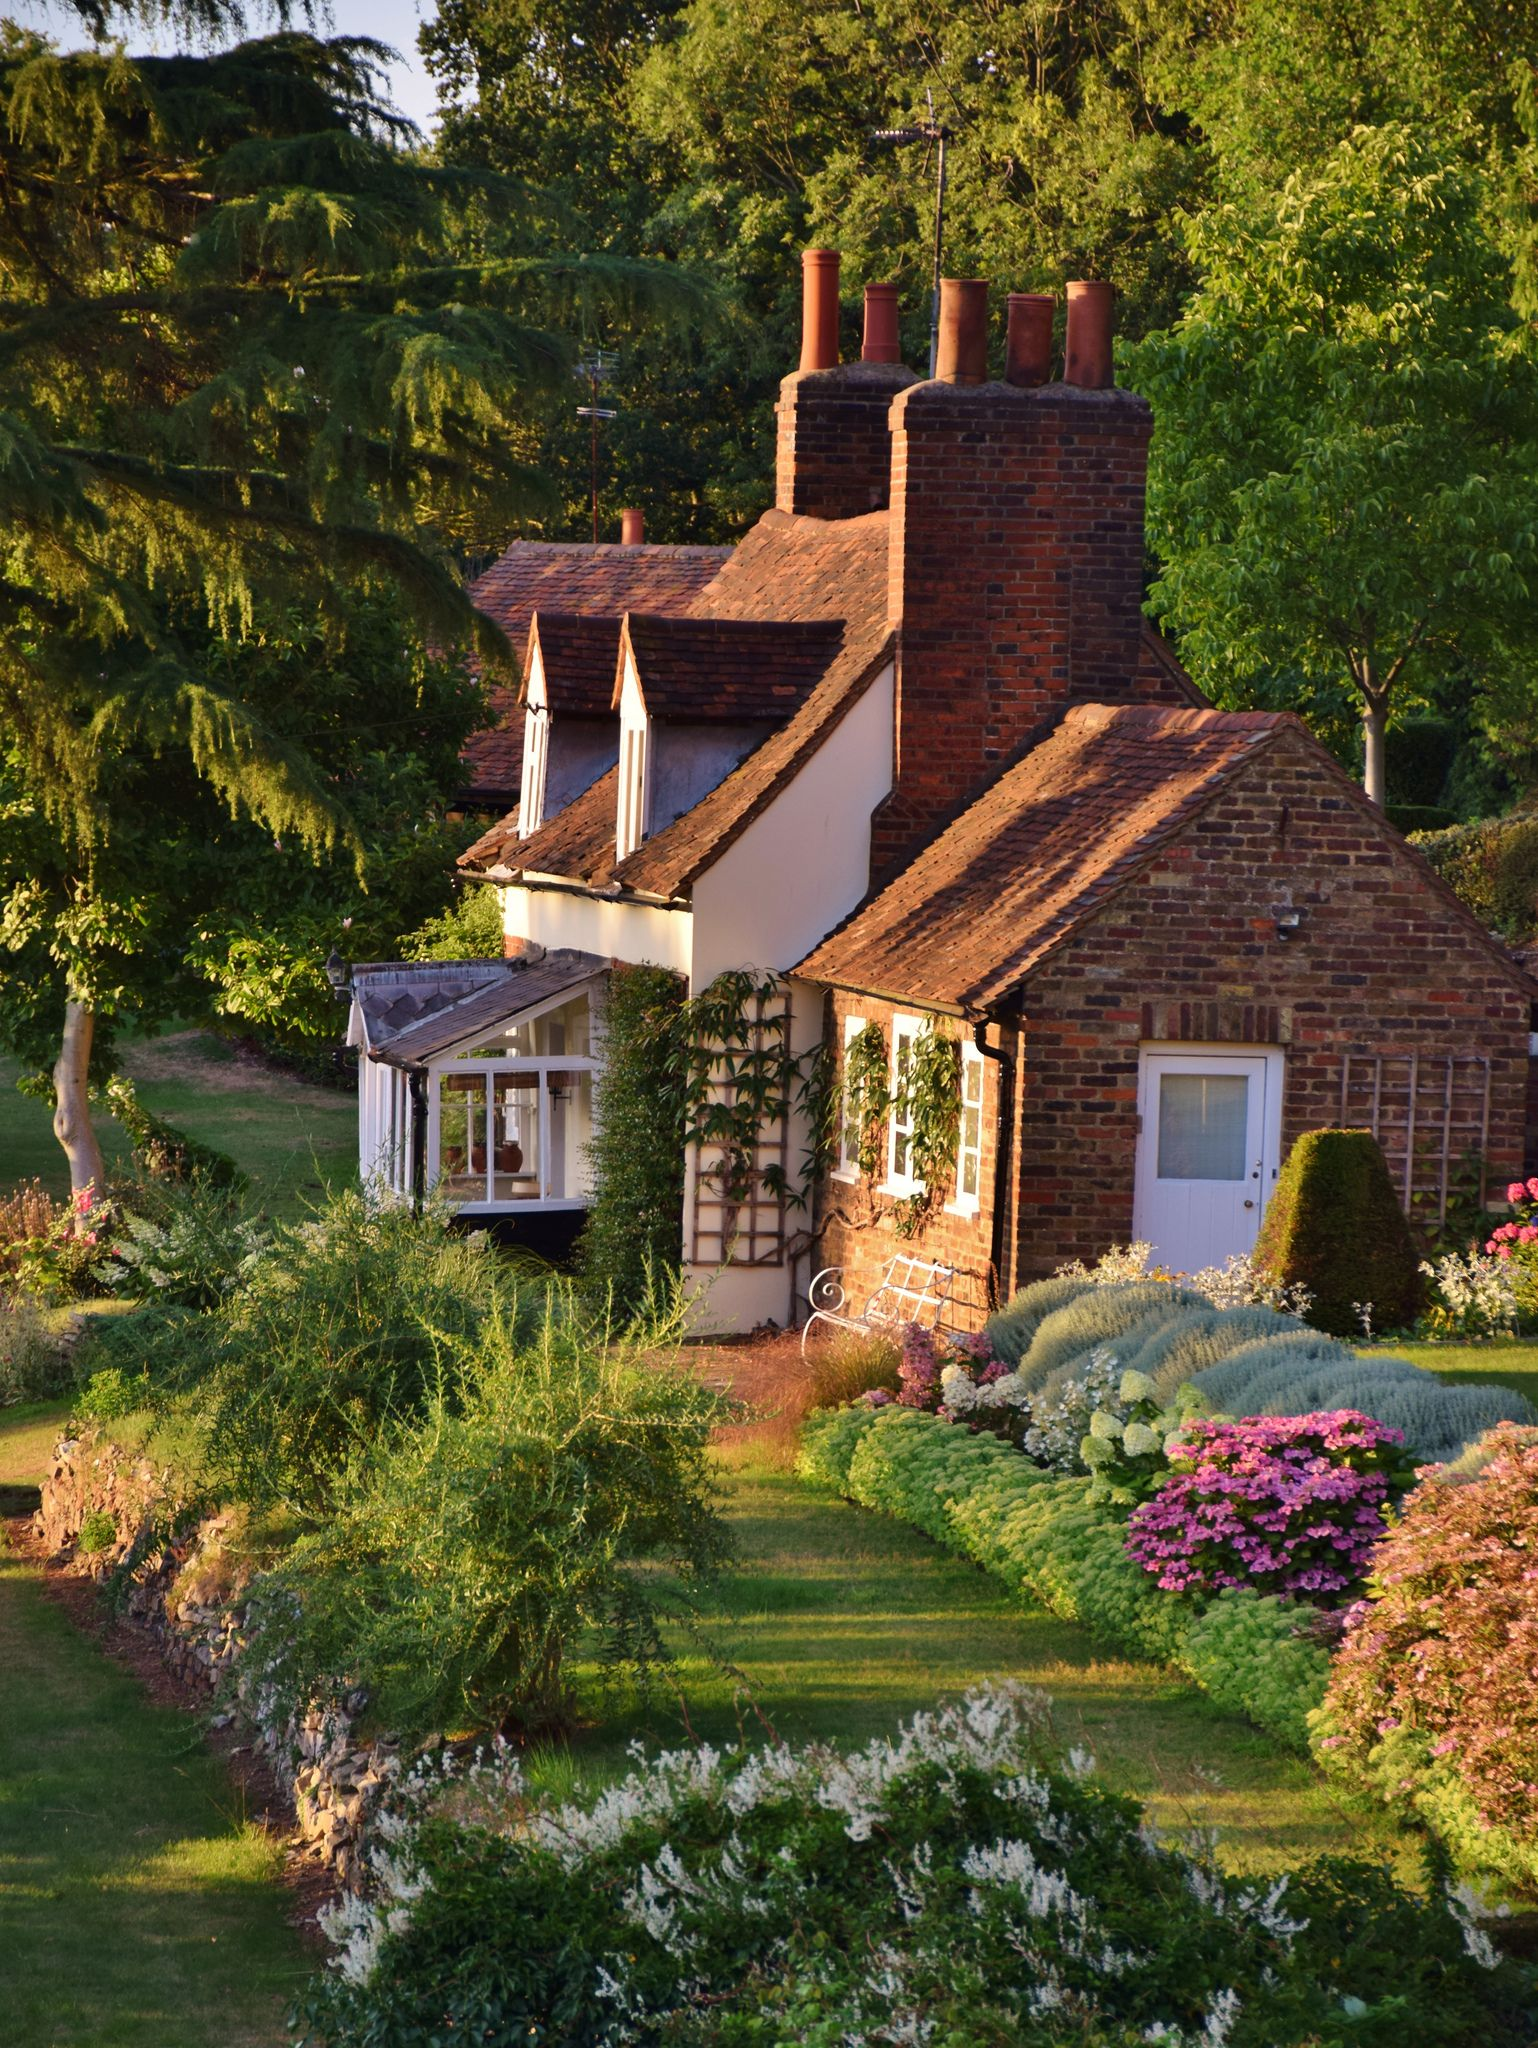 Country garden cottage